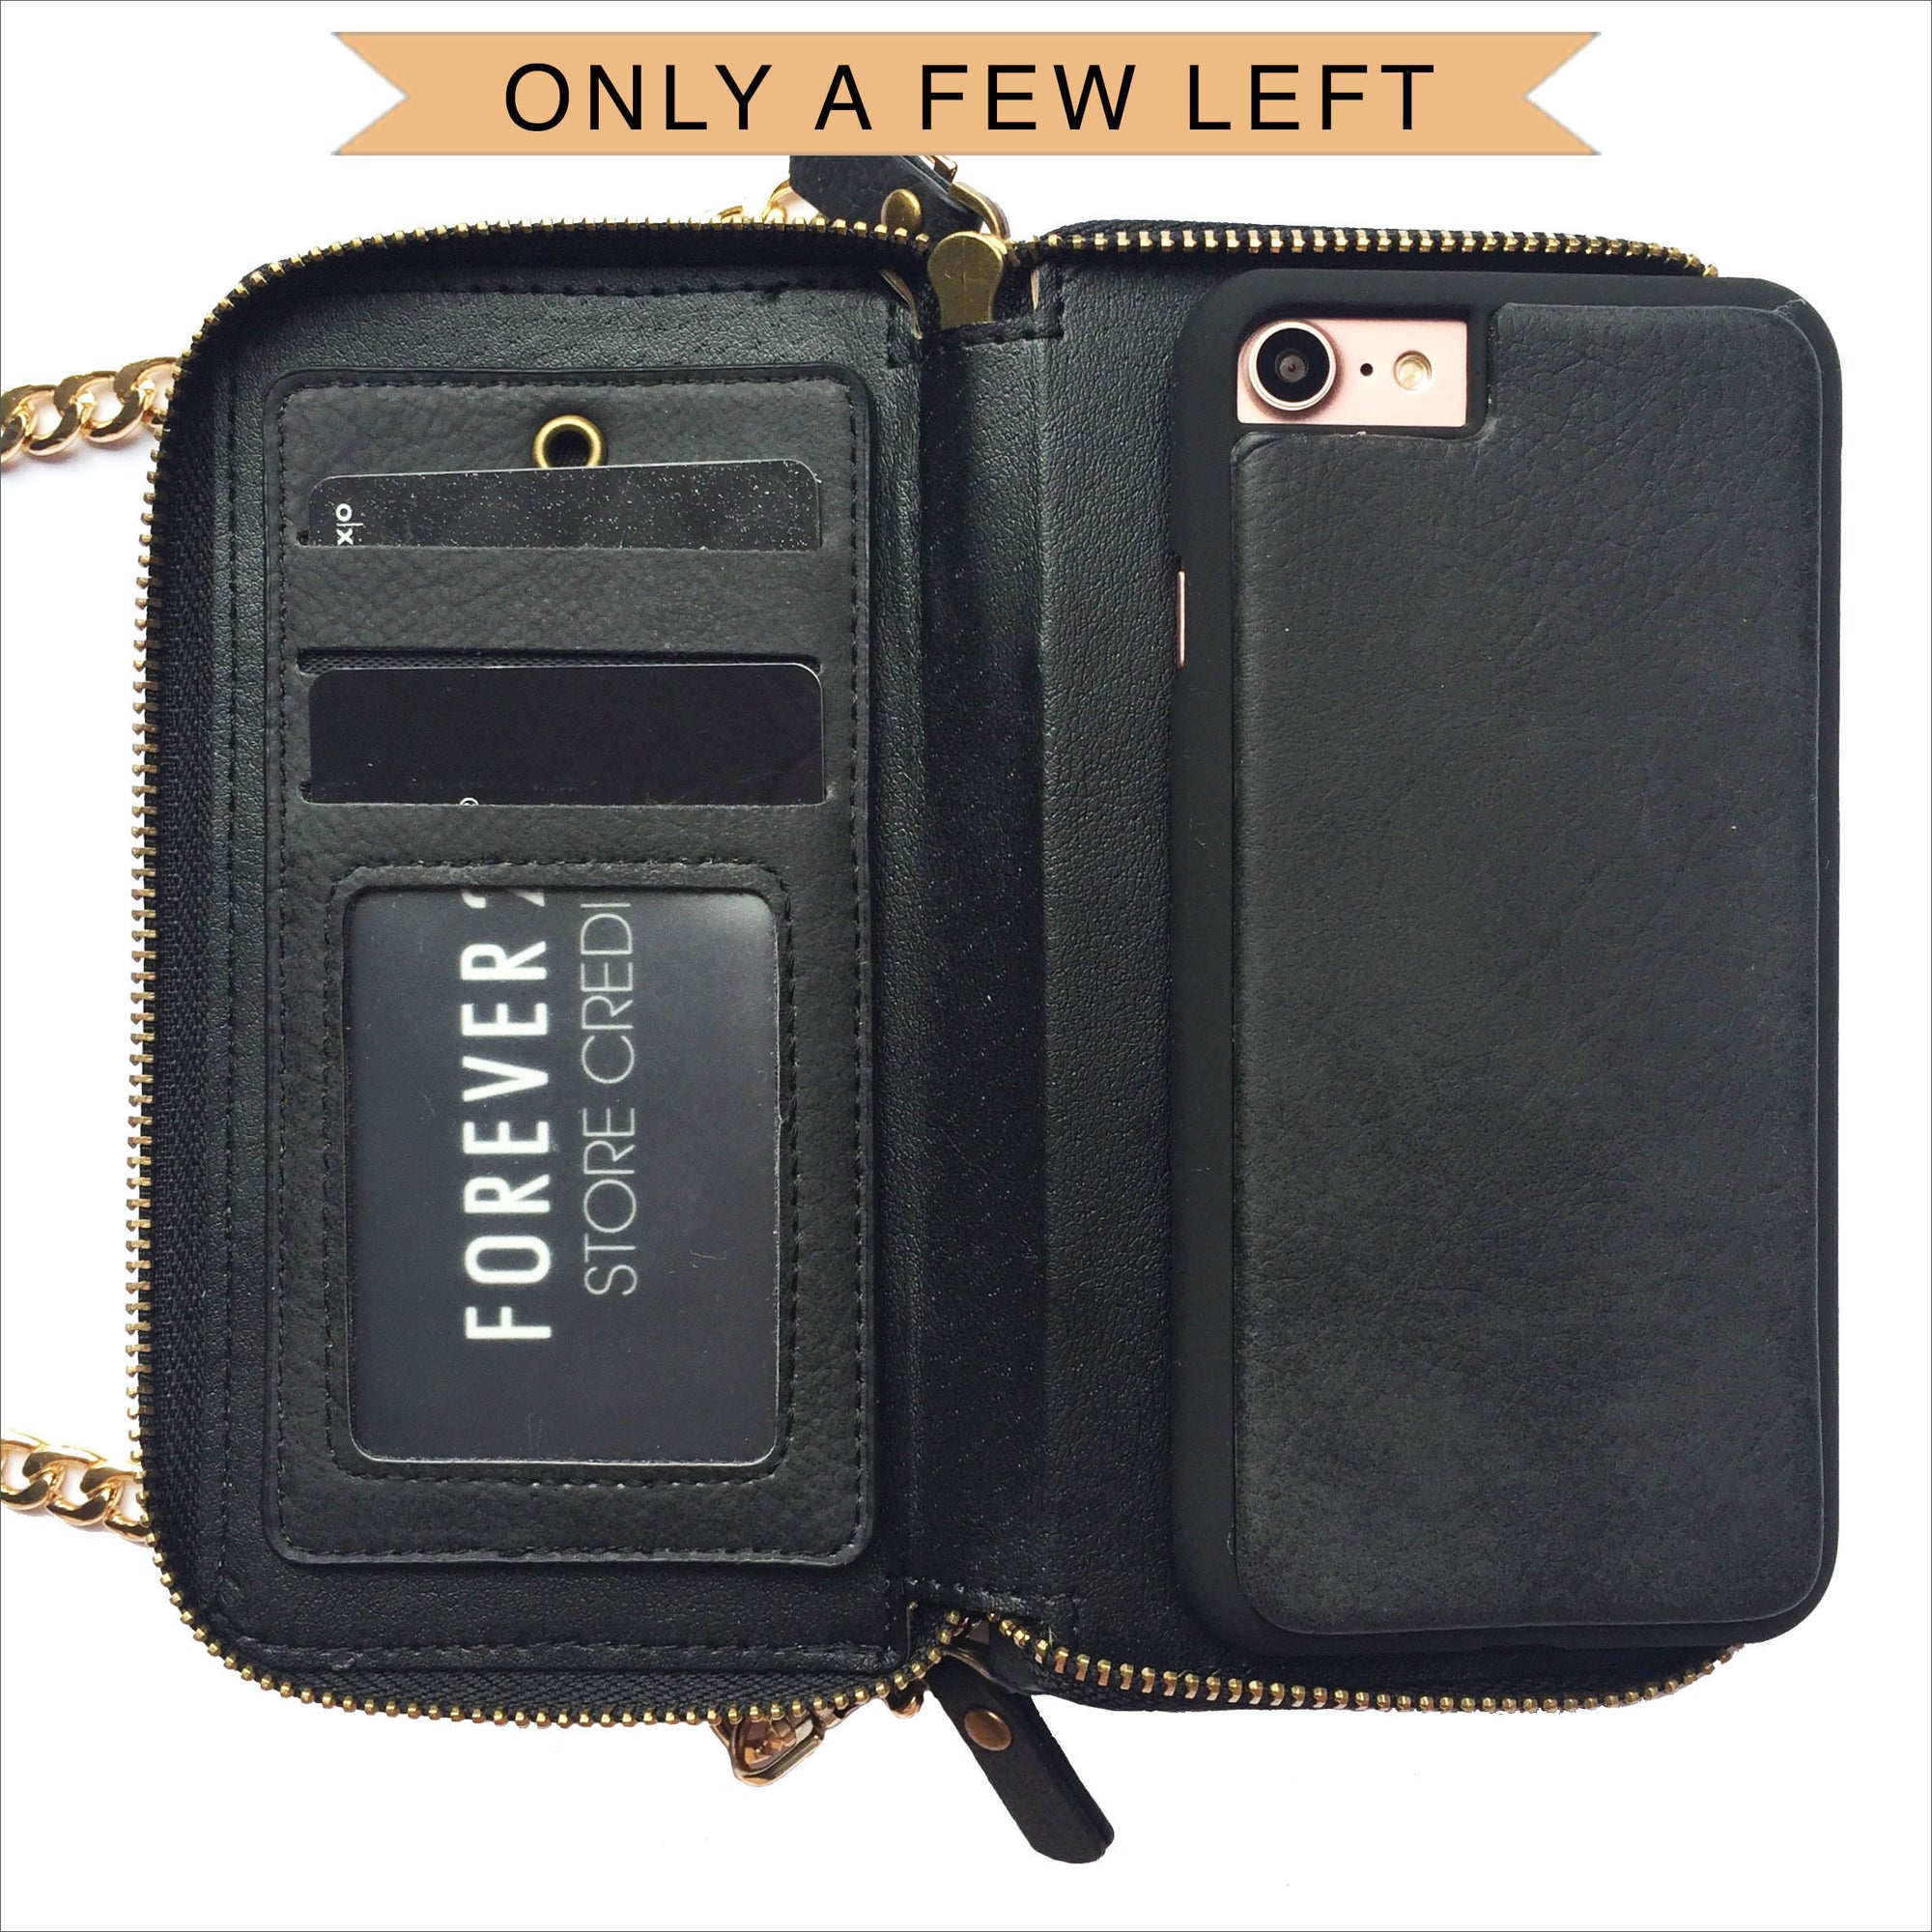 quality design d6c5e 96ca1 Crossbody Wallet Case in Black